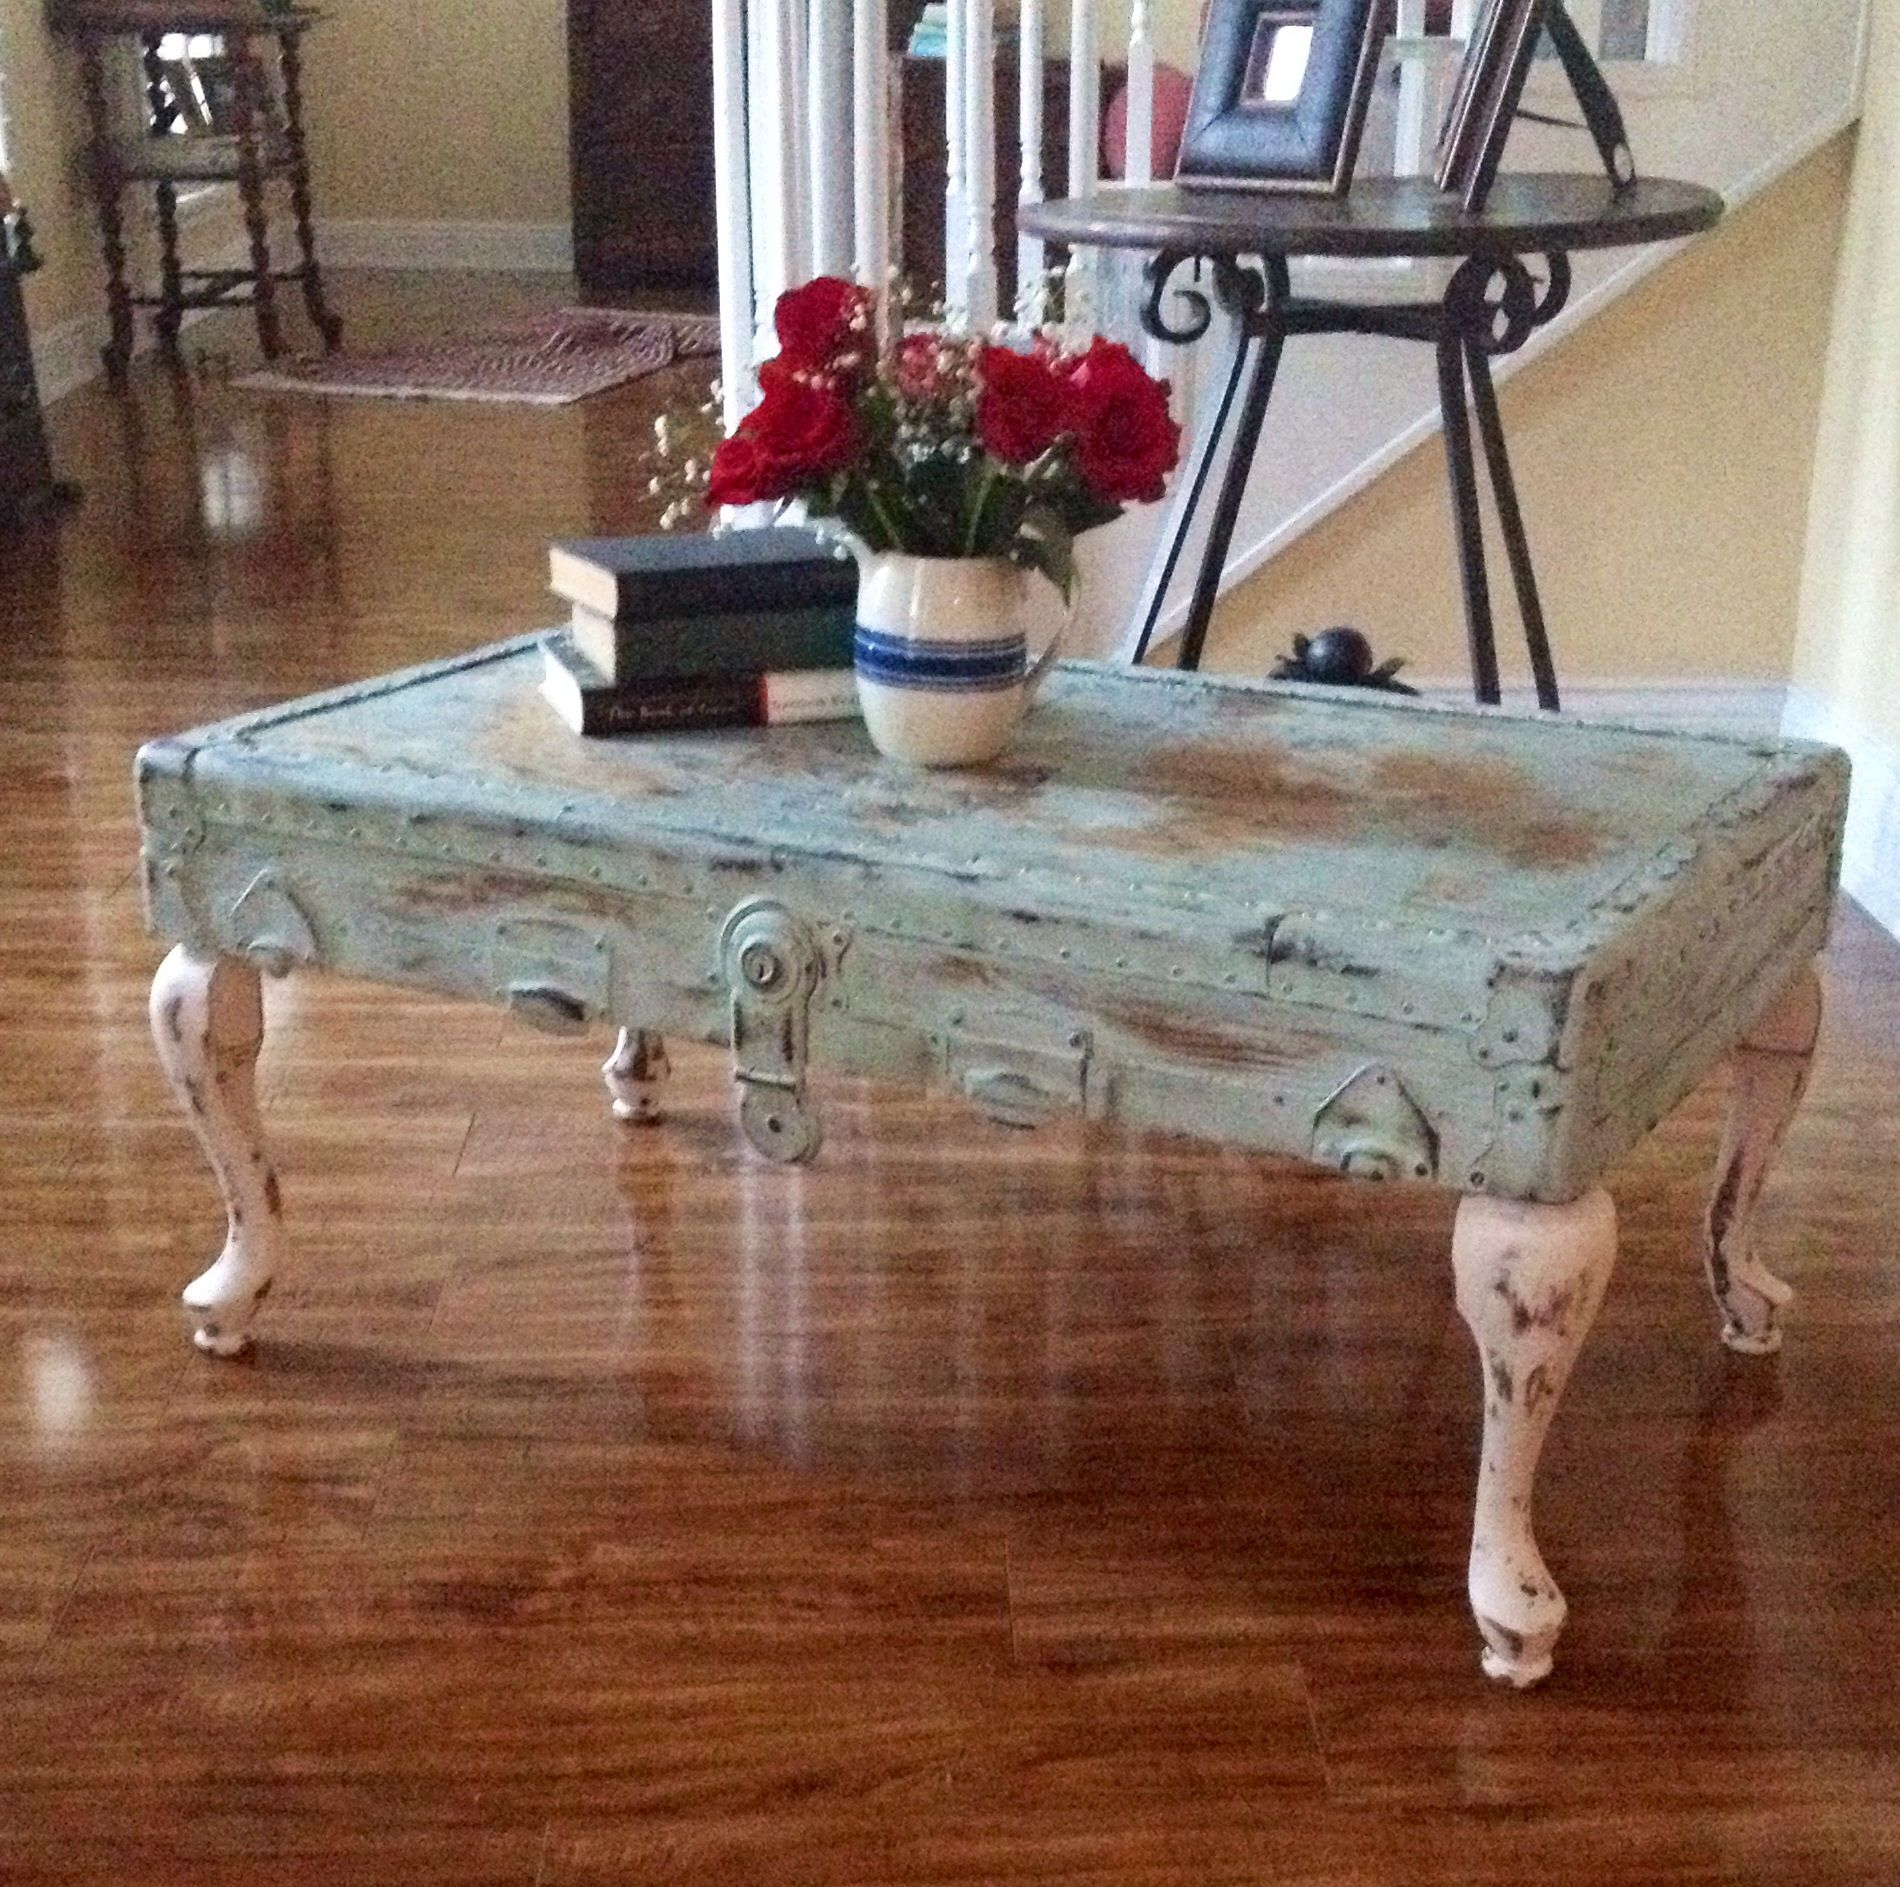 Shabby Chic Vintage Trunk Lid Coffee Table What A Great Idea For When I Come Across Old Trunks With Worn Out Bottoms But Solid Lids